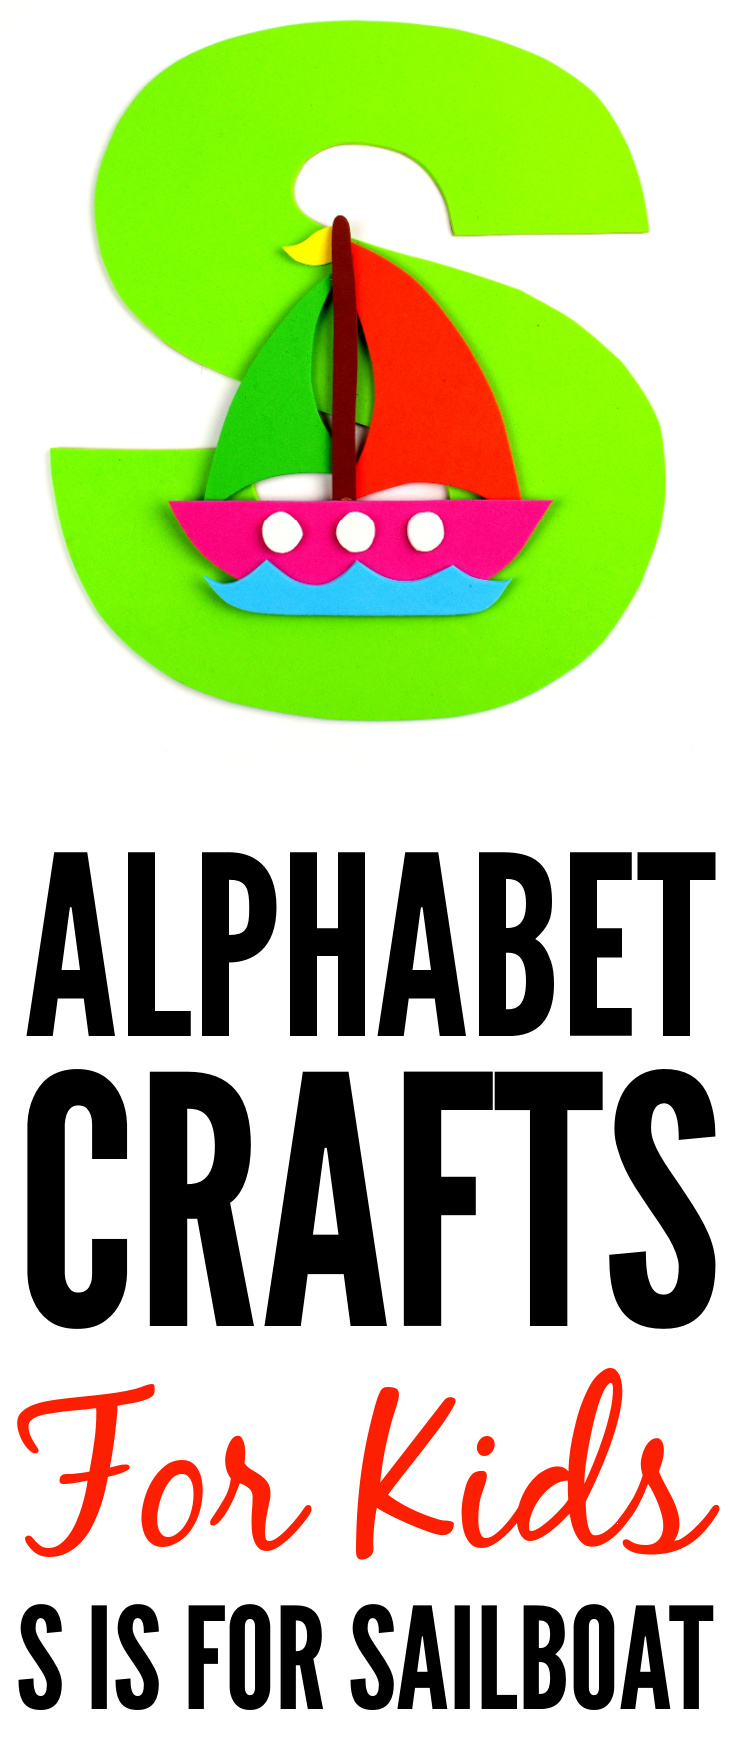 This week in my series of ABCs kids crafts featuring the Alphabet, we are doing an S is for Sailboat craft. These Alphabet Crafts For Kids are a fun way to introduce your child to the alphabet.